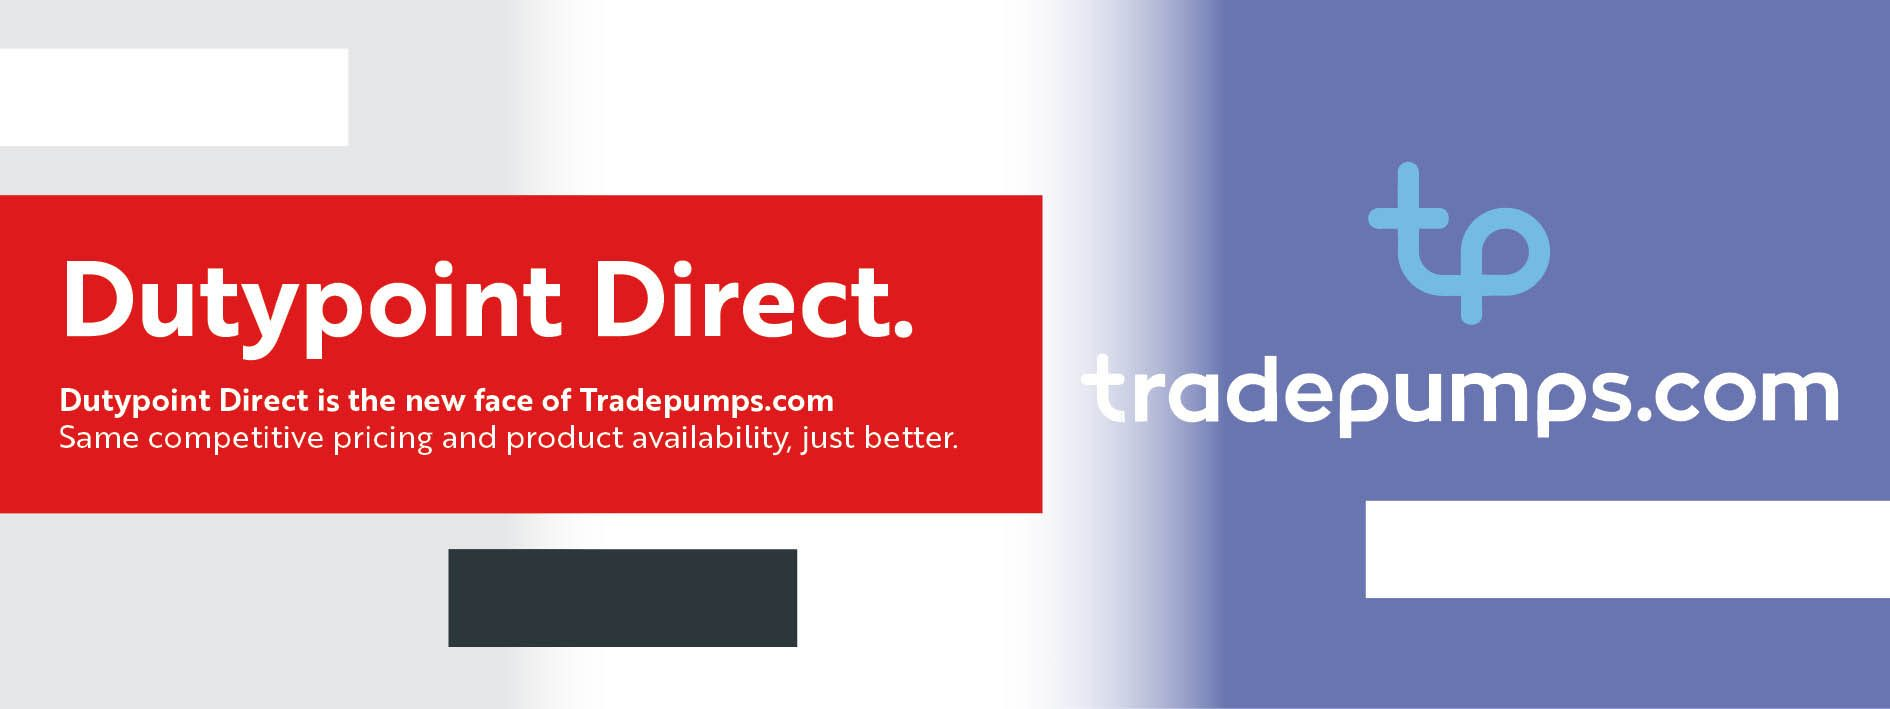 Dutypoint Direct is the new face of Tradepumps